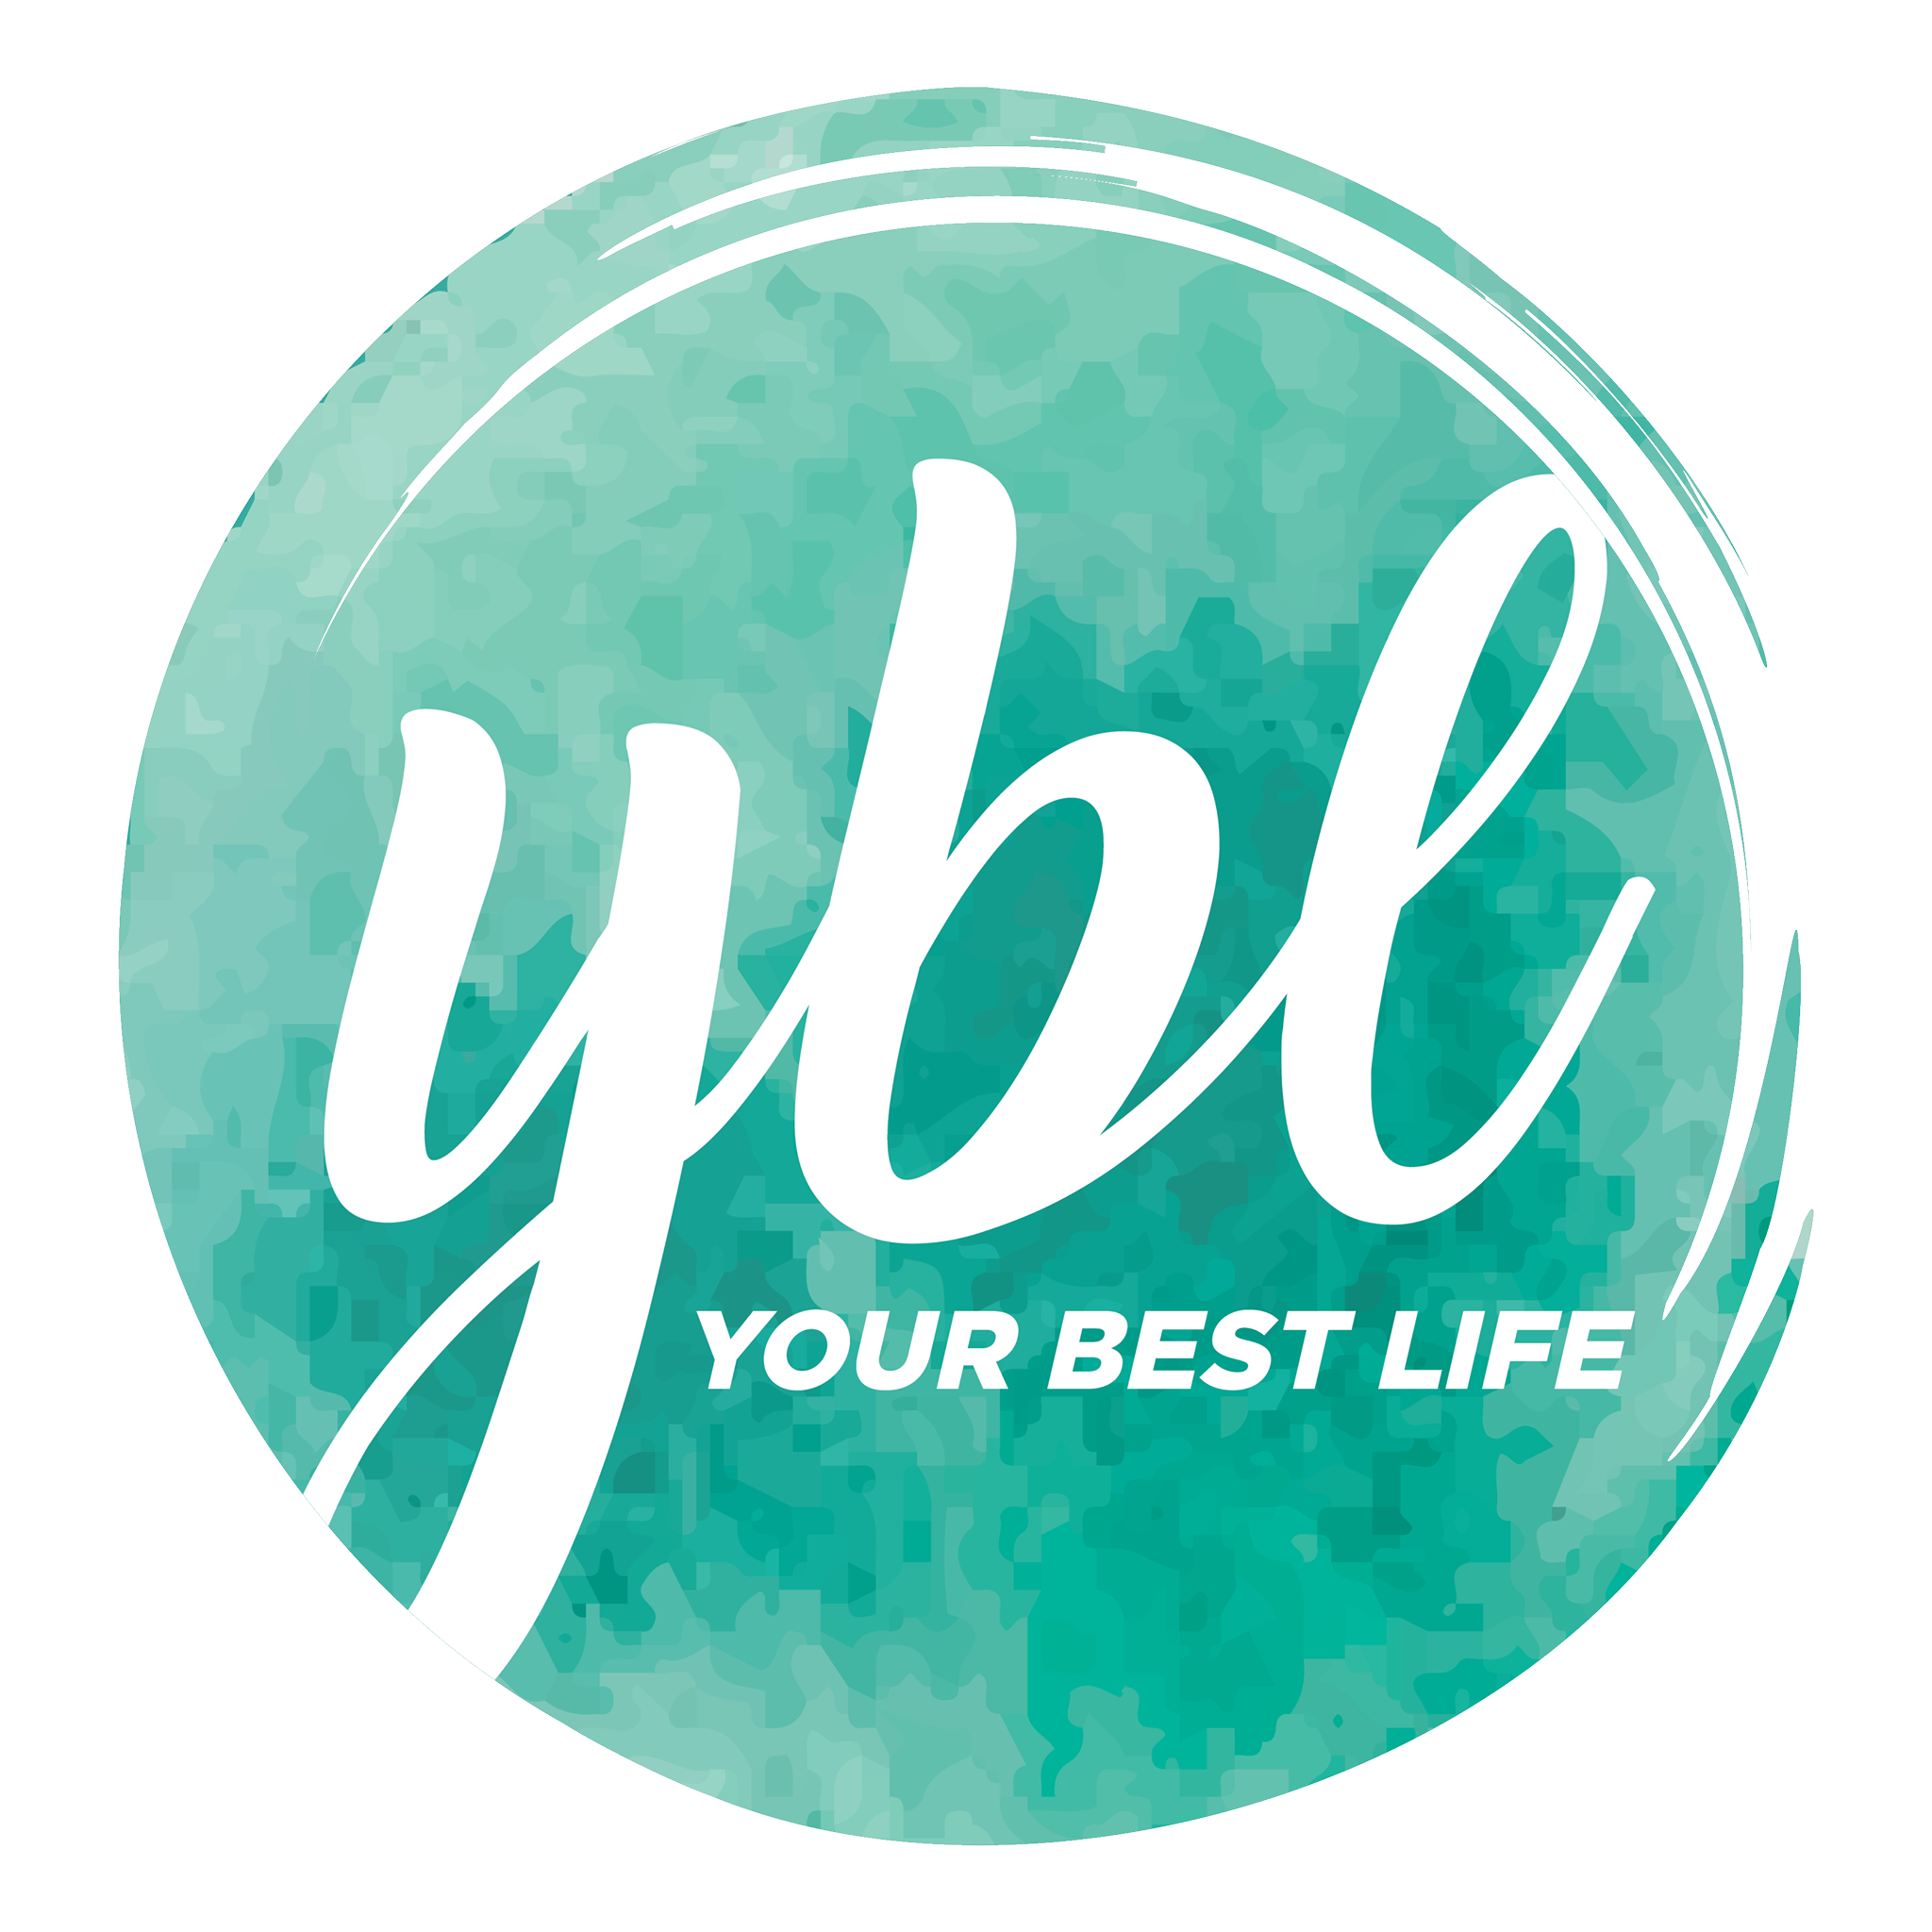 @LindaDixon Want to know more about Your Best Life & Business Opportunities? Link Thumbnail | Linktree